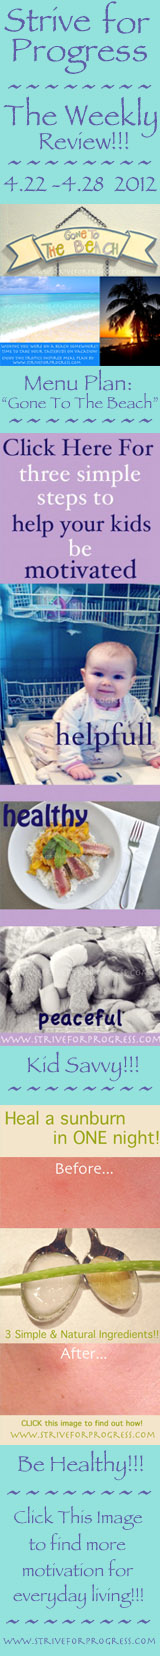 Strive For Progress: The Weekly Review Meal Plan: Gone To The Beach, Kid Savvy: Motivate Your Kids, Be Healthy: Heal A Sunburn In One Night!  www.striveforprog...